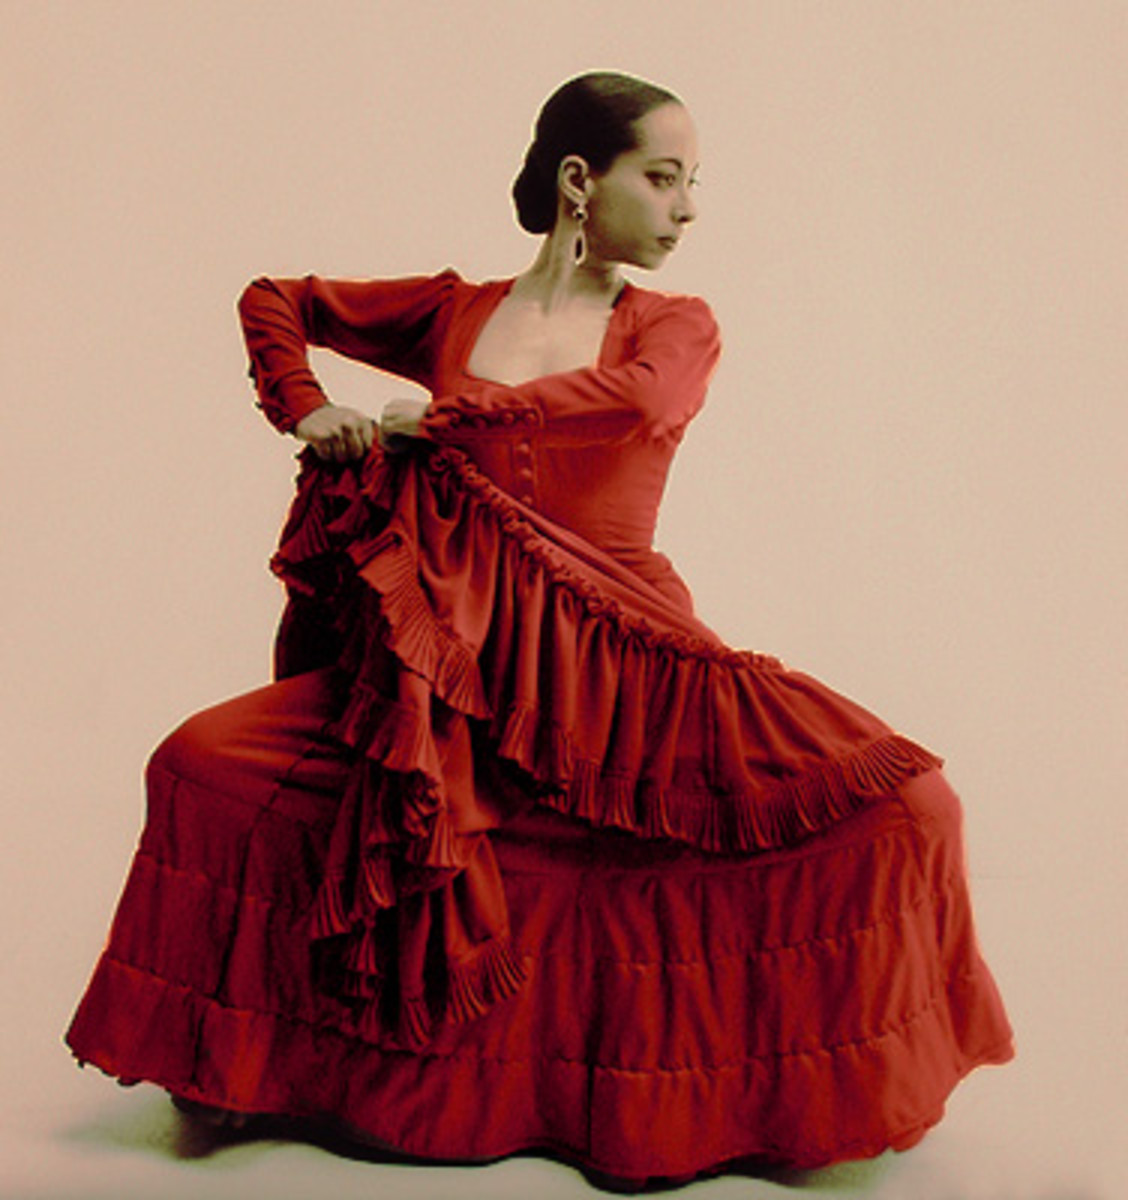 Traditional Flamenco dancer.